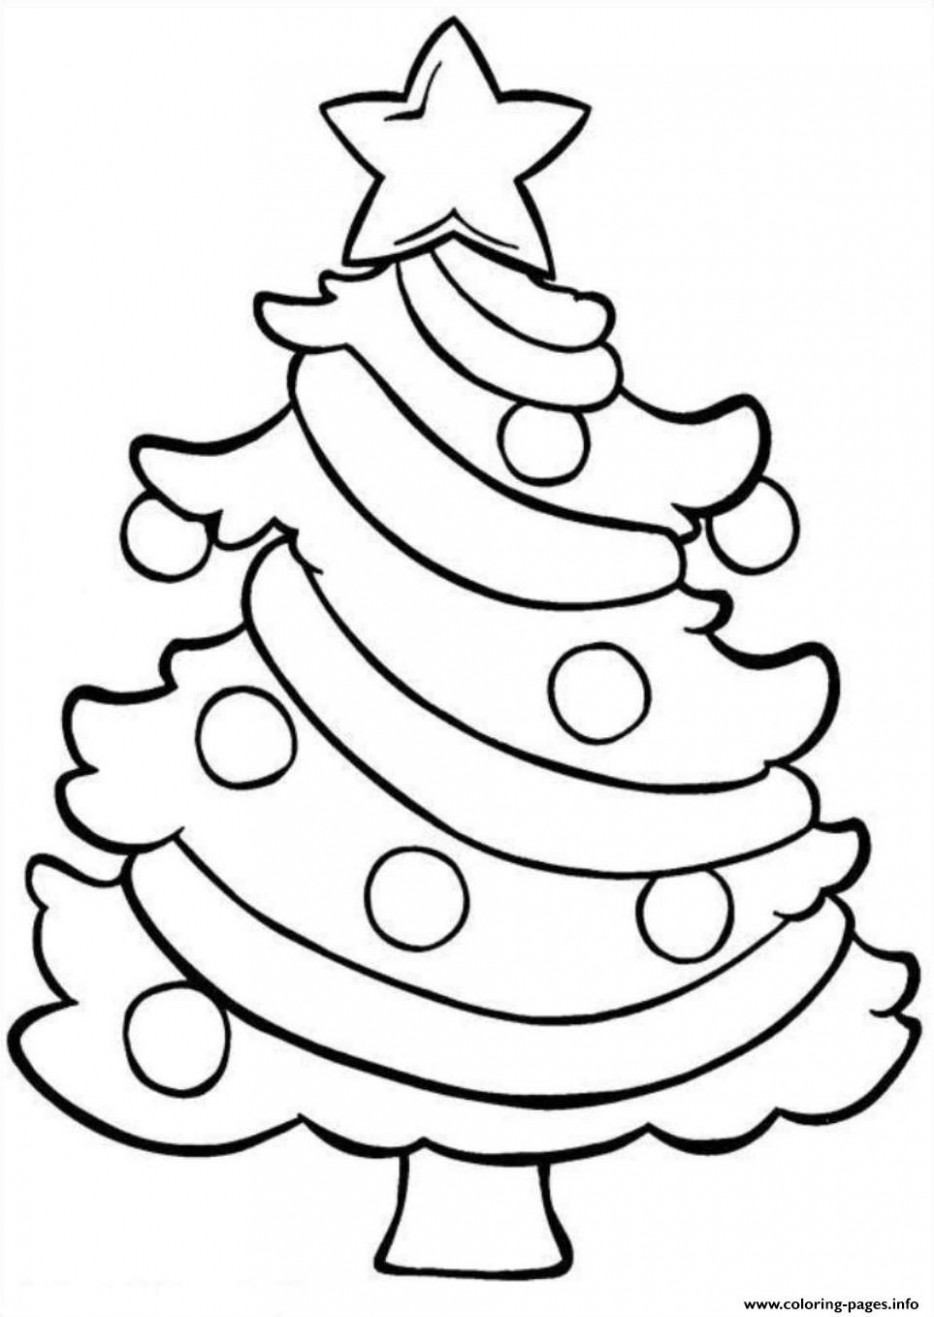 Print coloring pages christmas tree easy e14f14df coloring ..